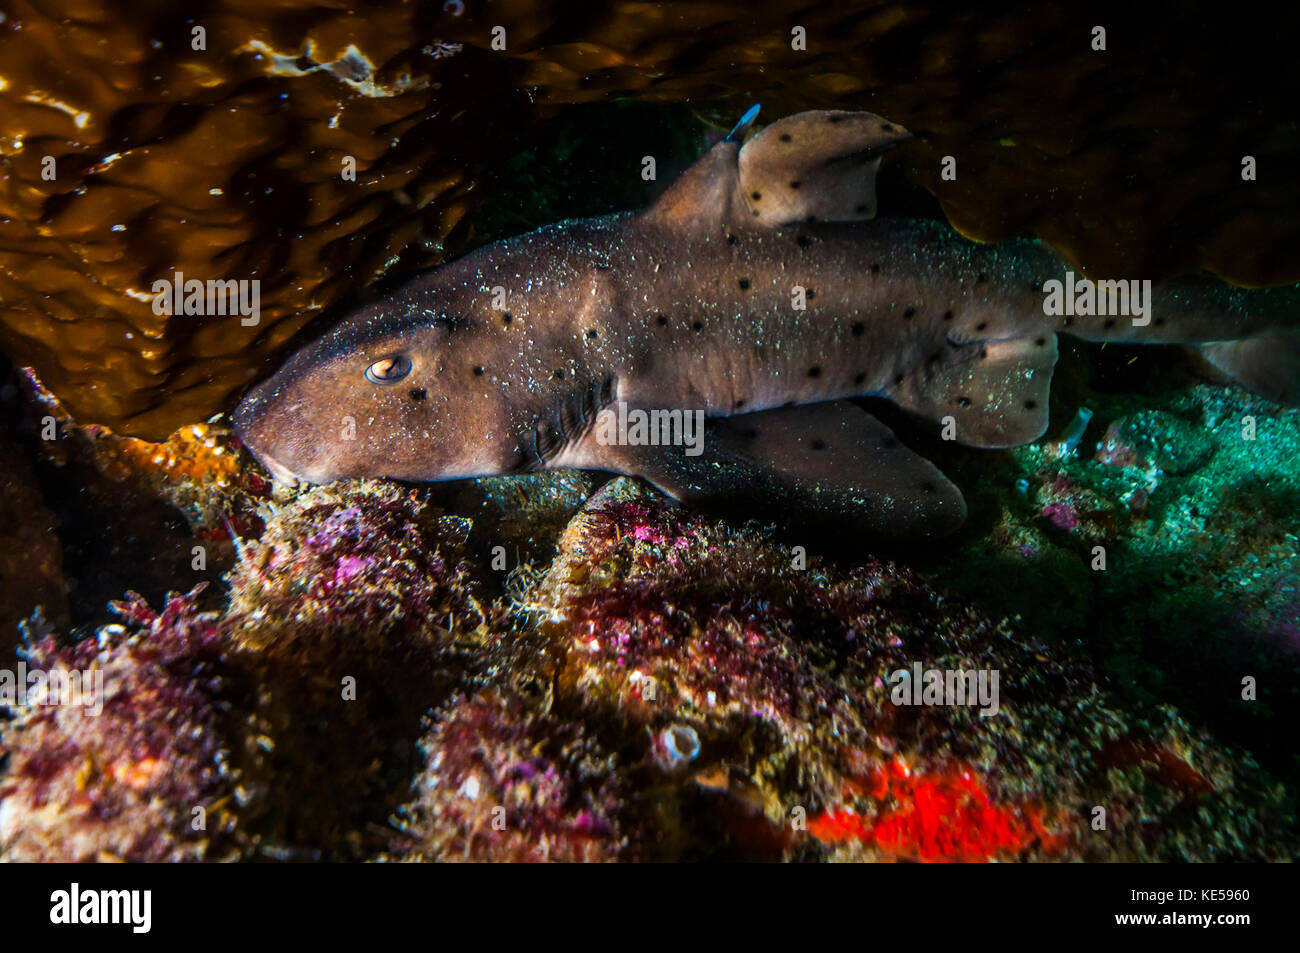 Docile horn shark in the kelp gardens in Catalina Islands. - Stock Image